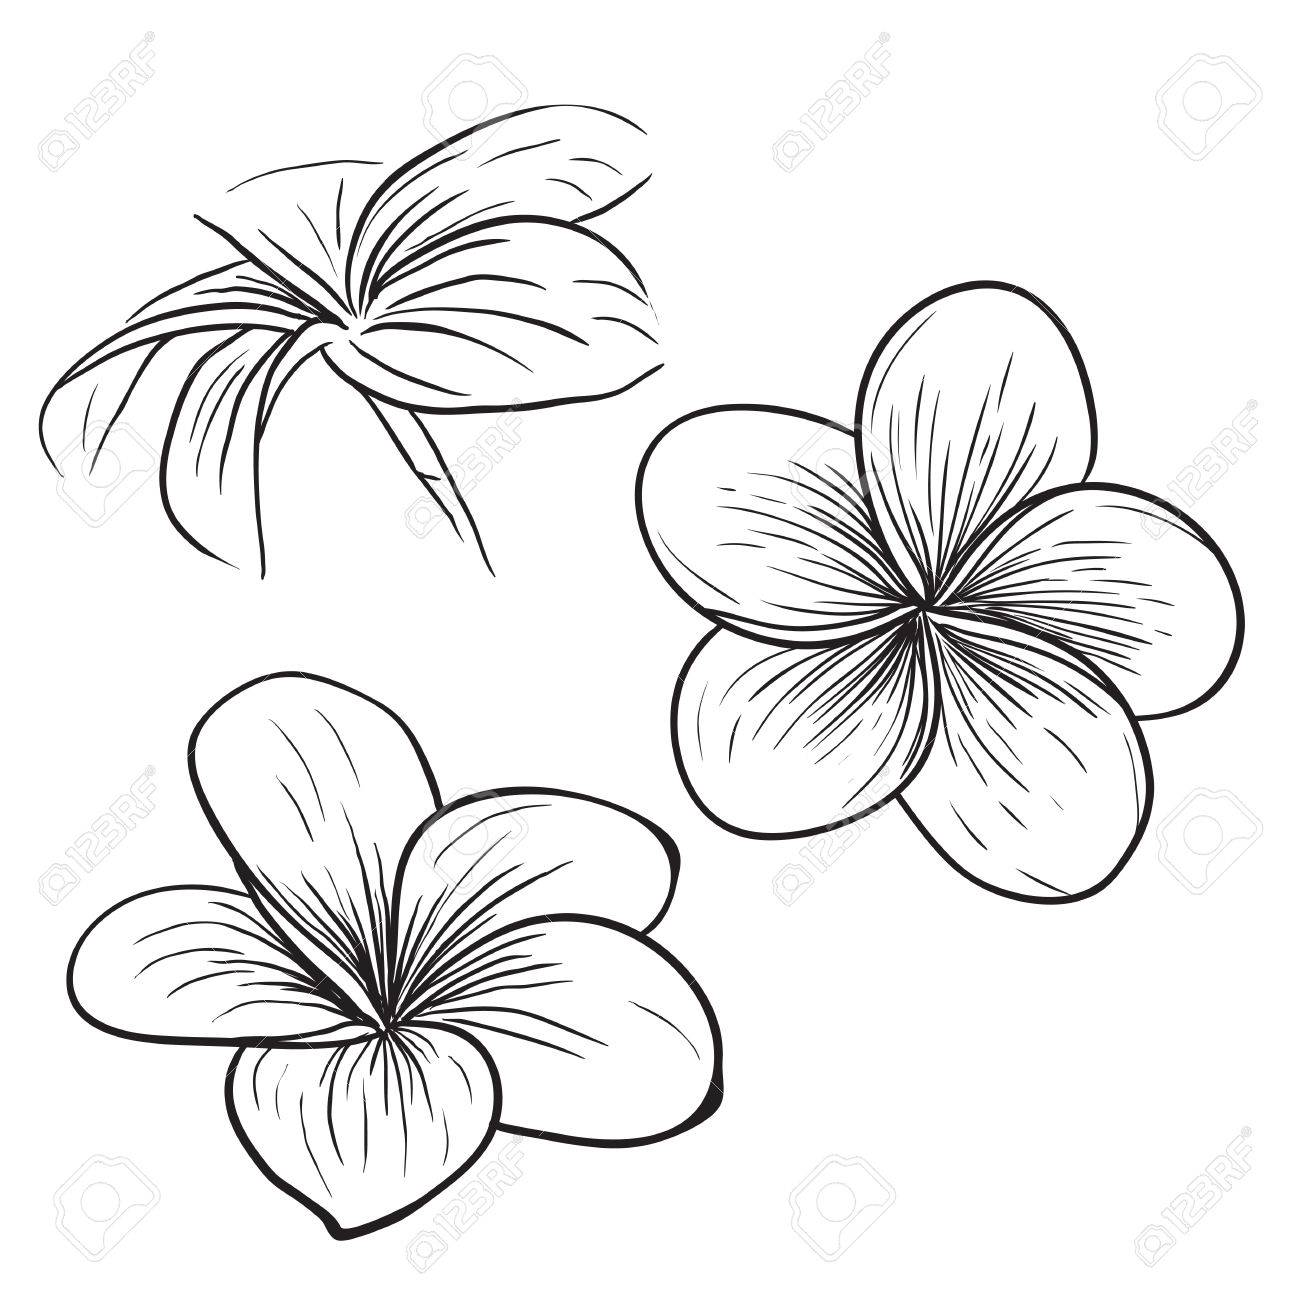 Plumeria Line Drawing At Getdrawings